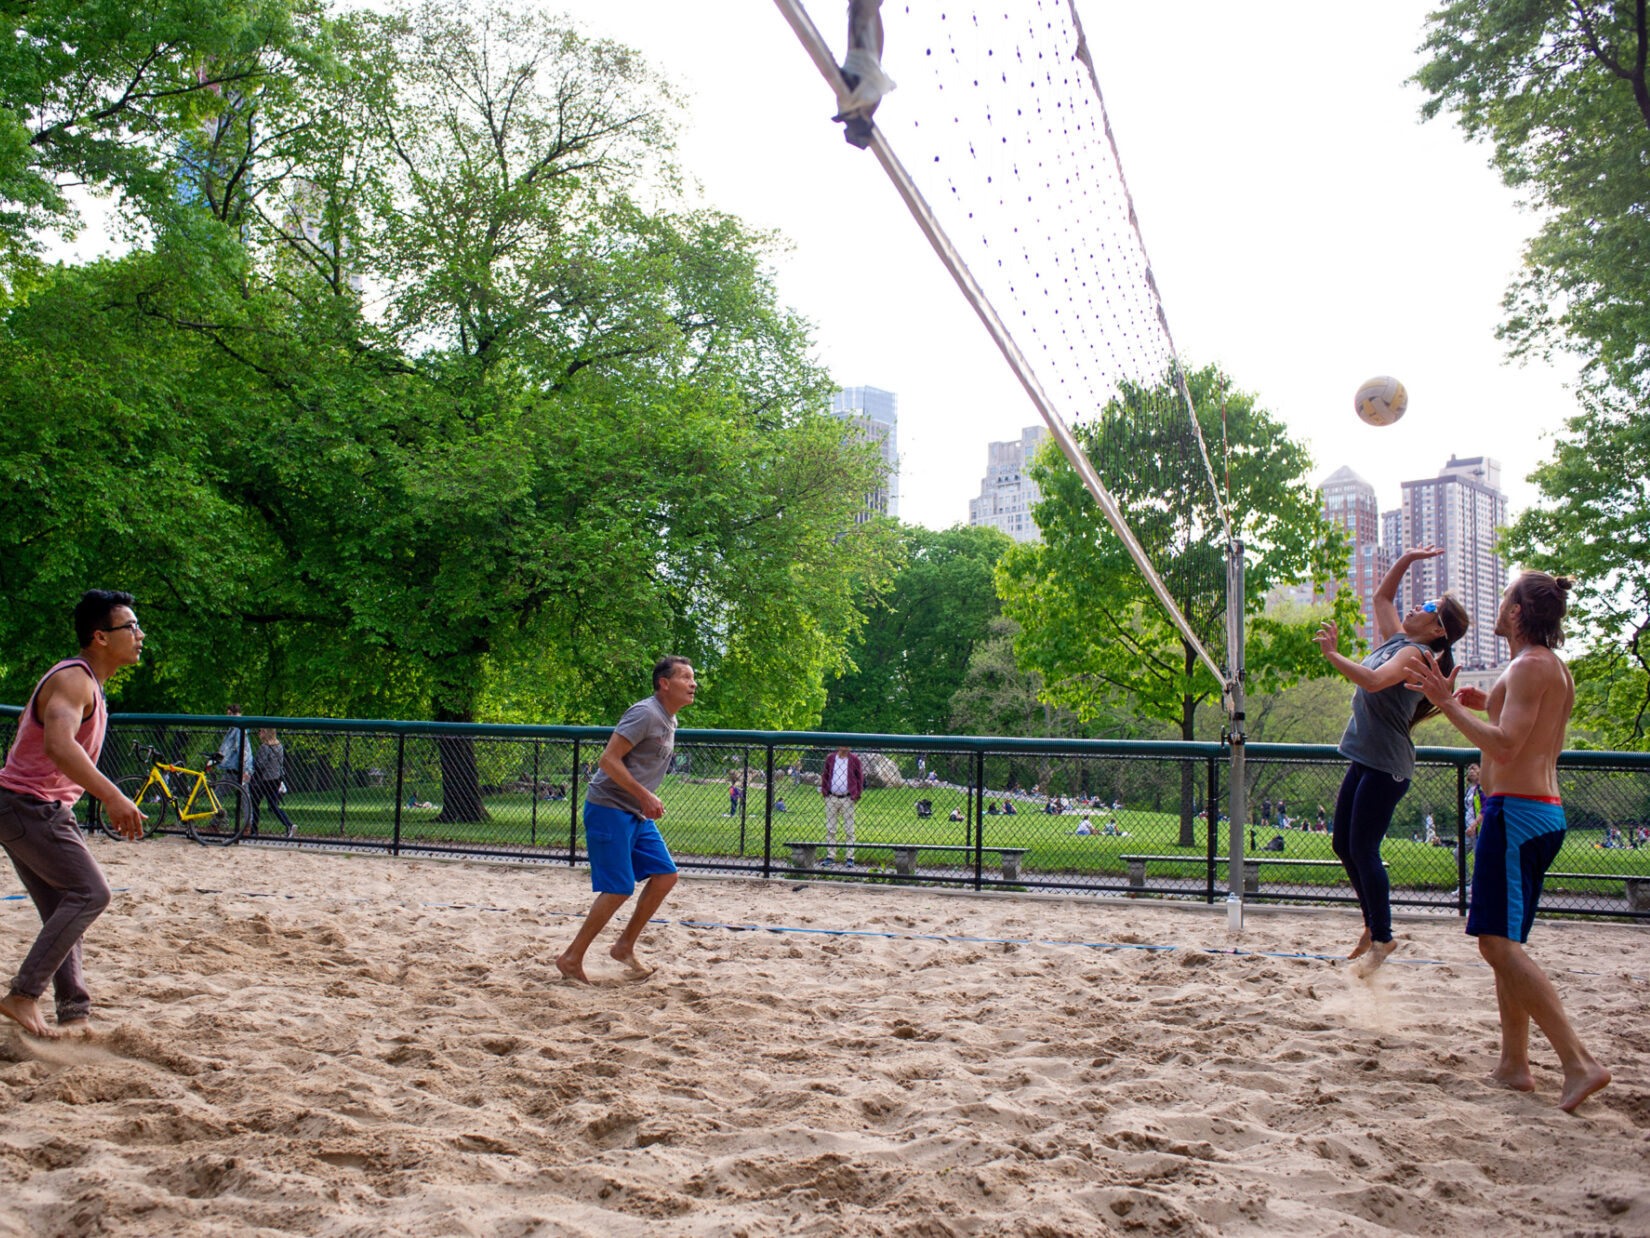 Four players squaring off on the volleyball court